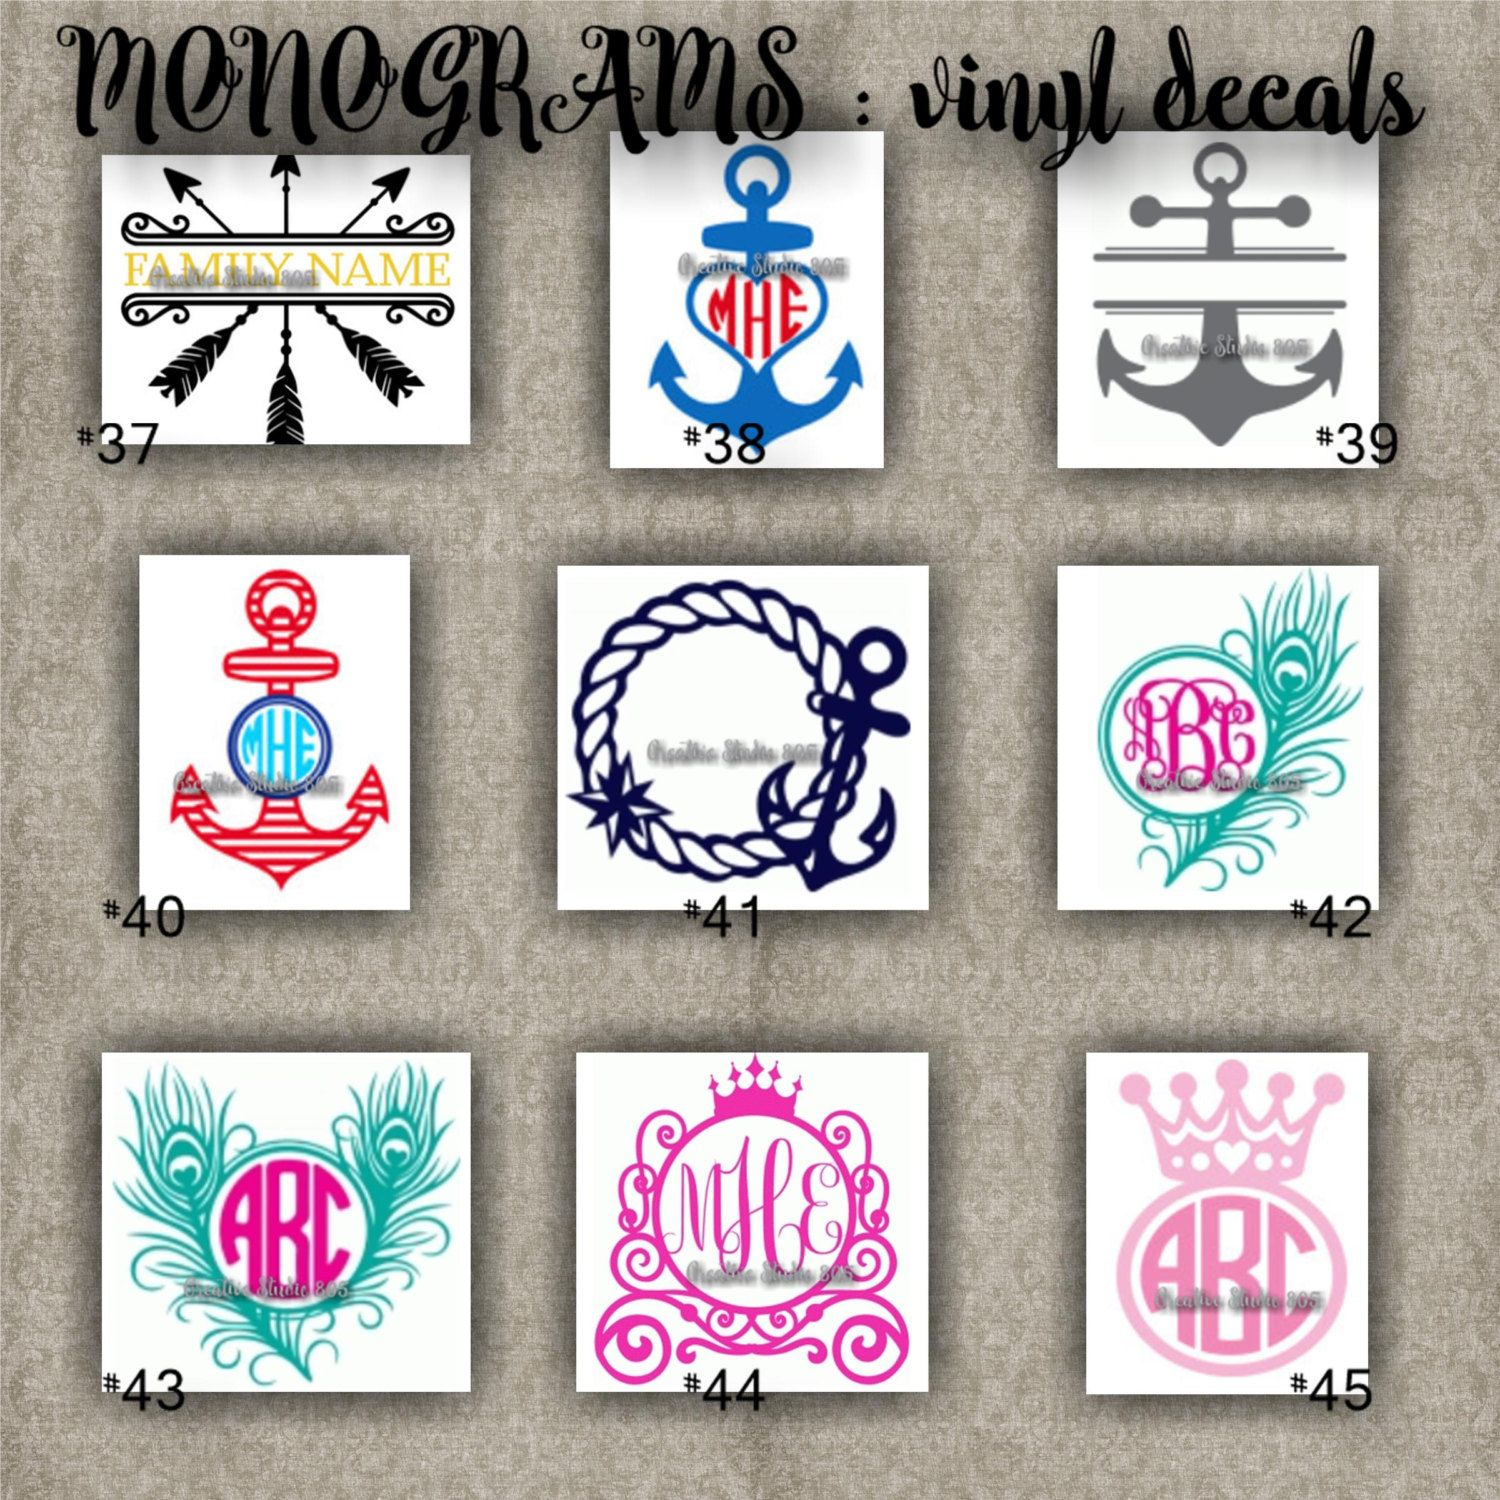 MONOGRAM Vinyl Decals Name Initial Decal Sticker Car - Custom vinyl stickerscreate a custom sticker or decal car stickers